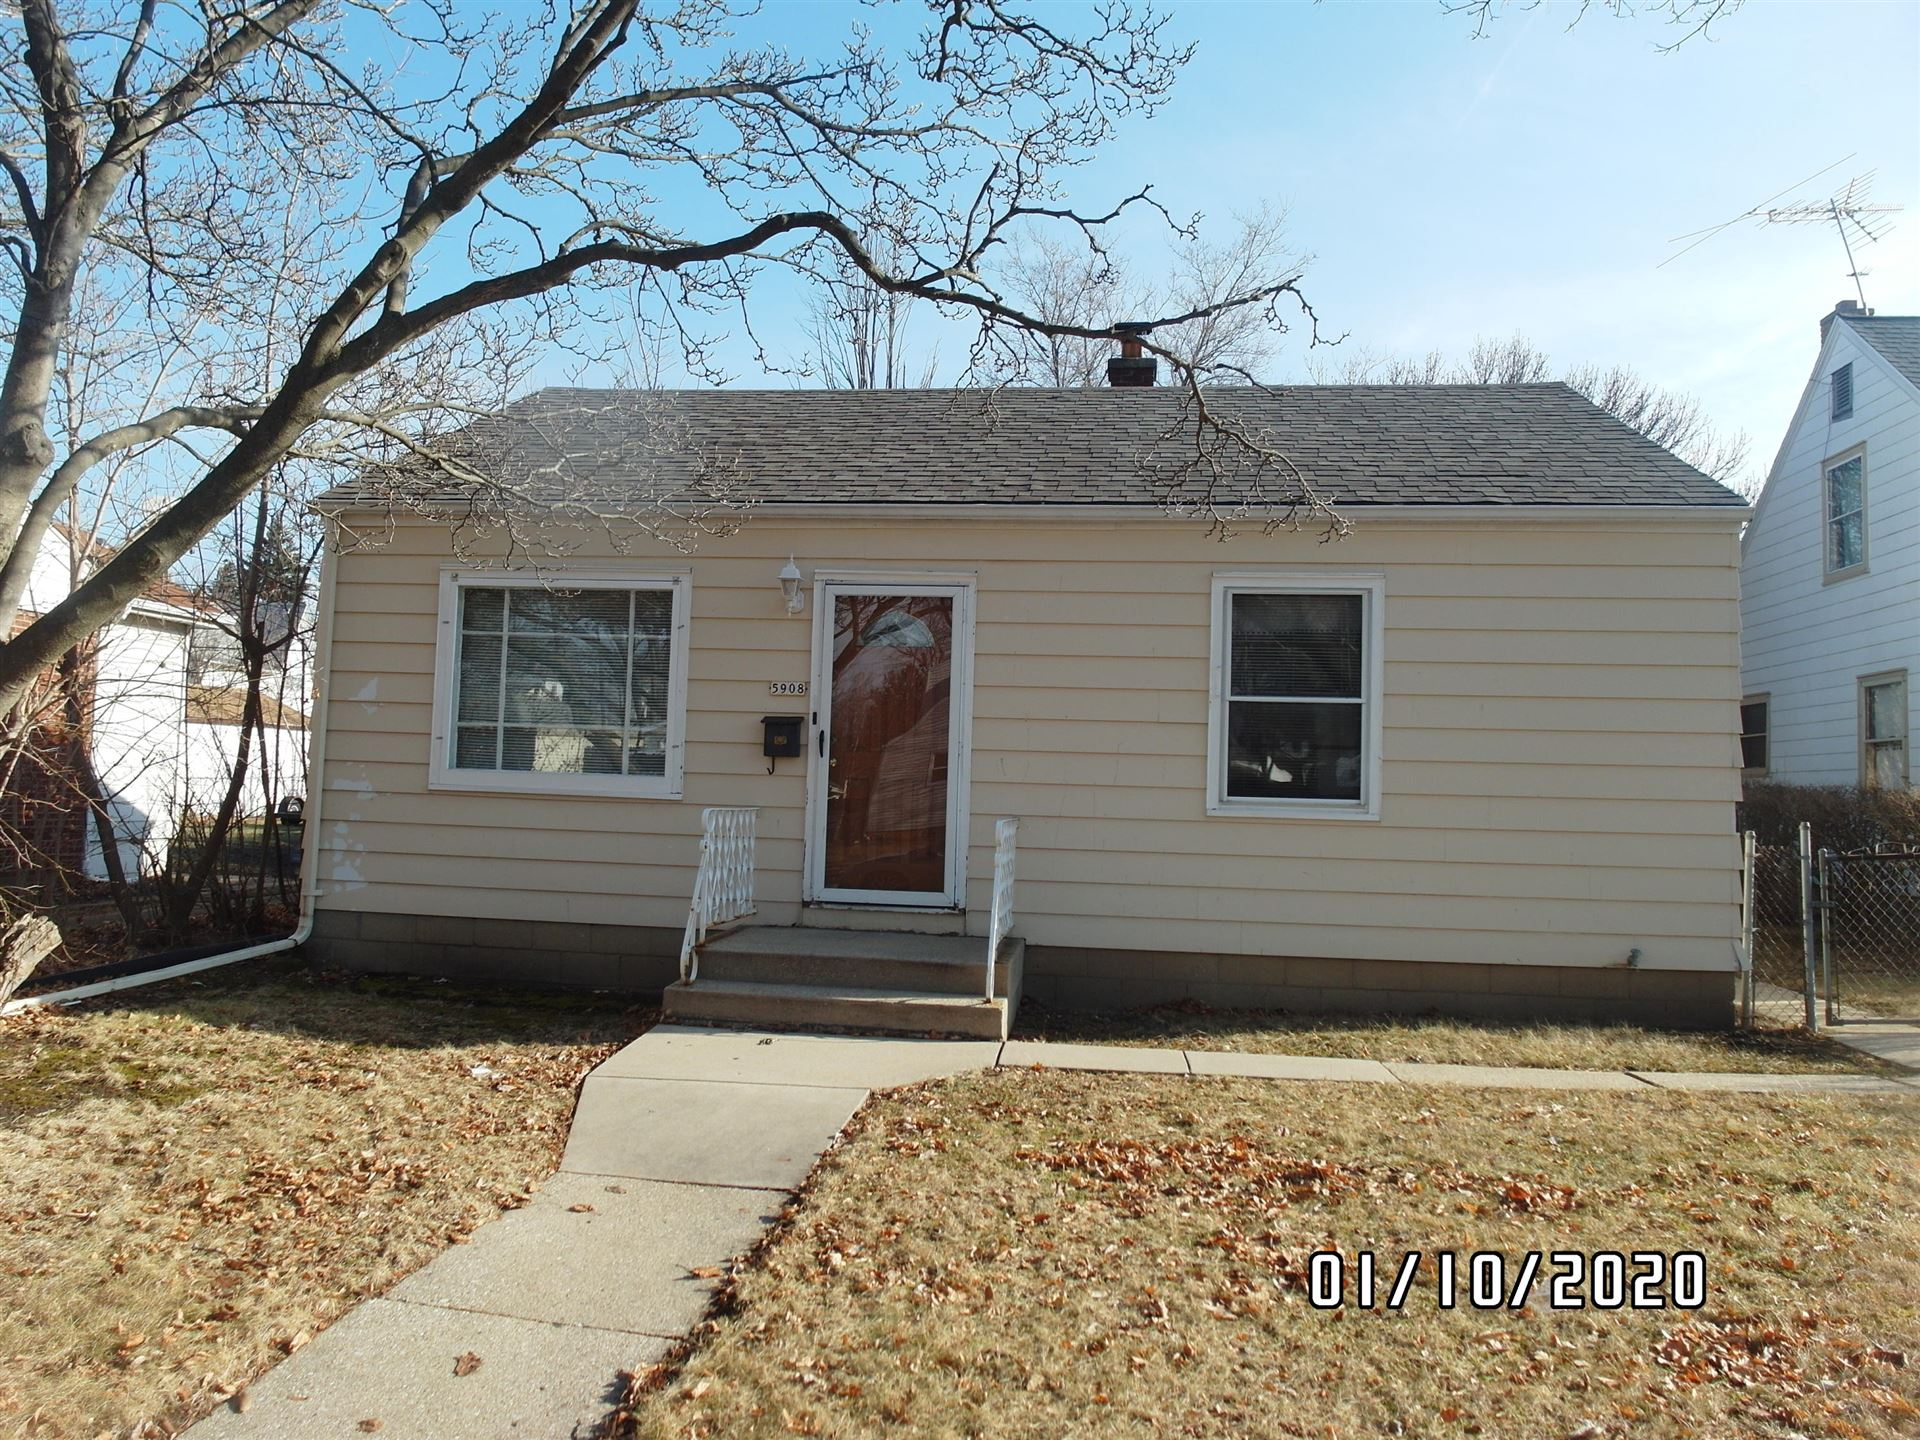 5908 N 32nd St, Milwaukee, WI 53209 - #: 1673792